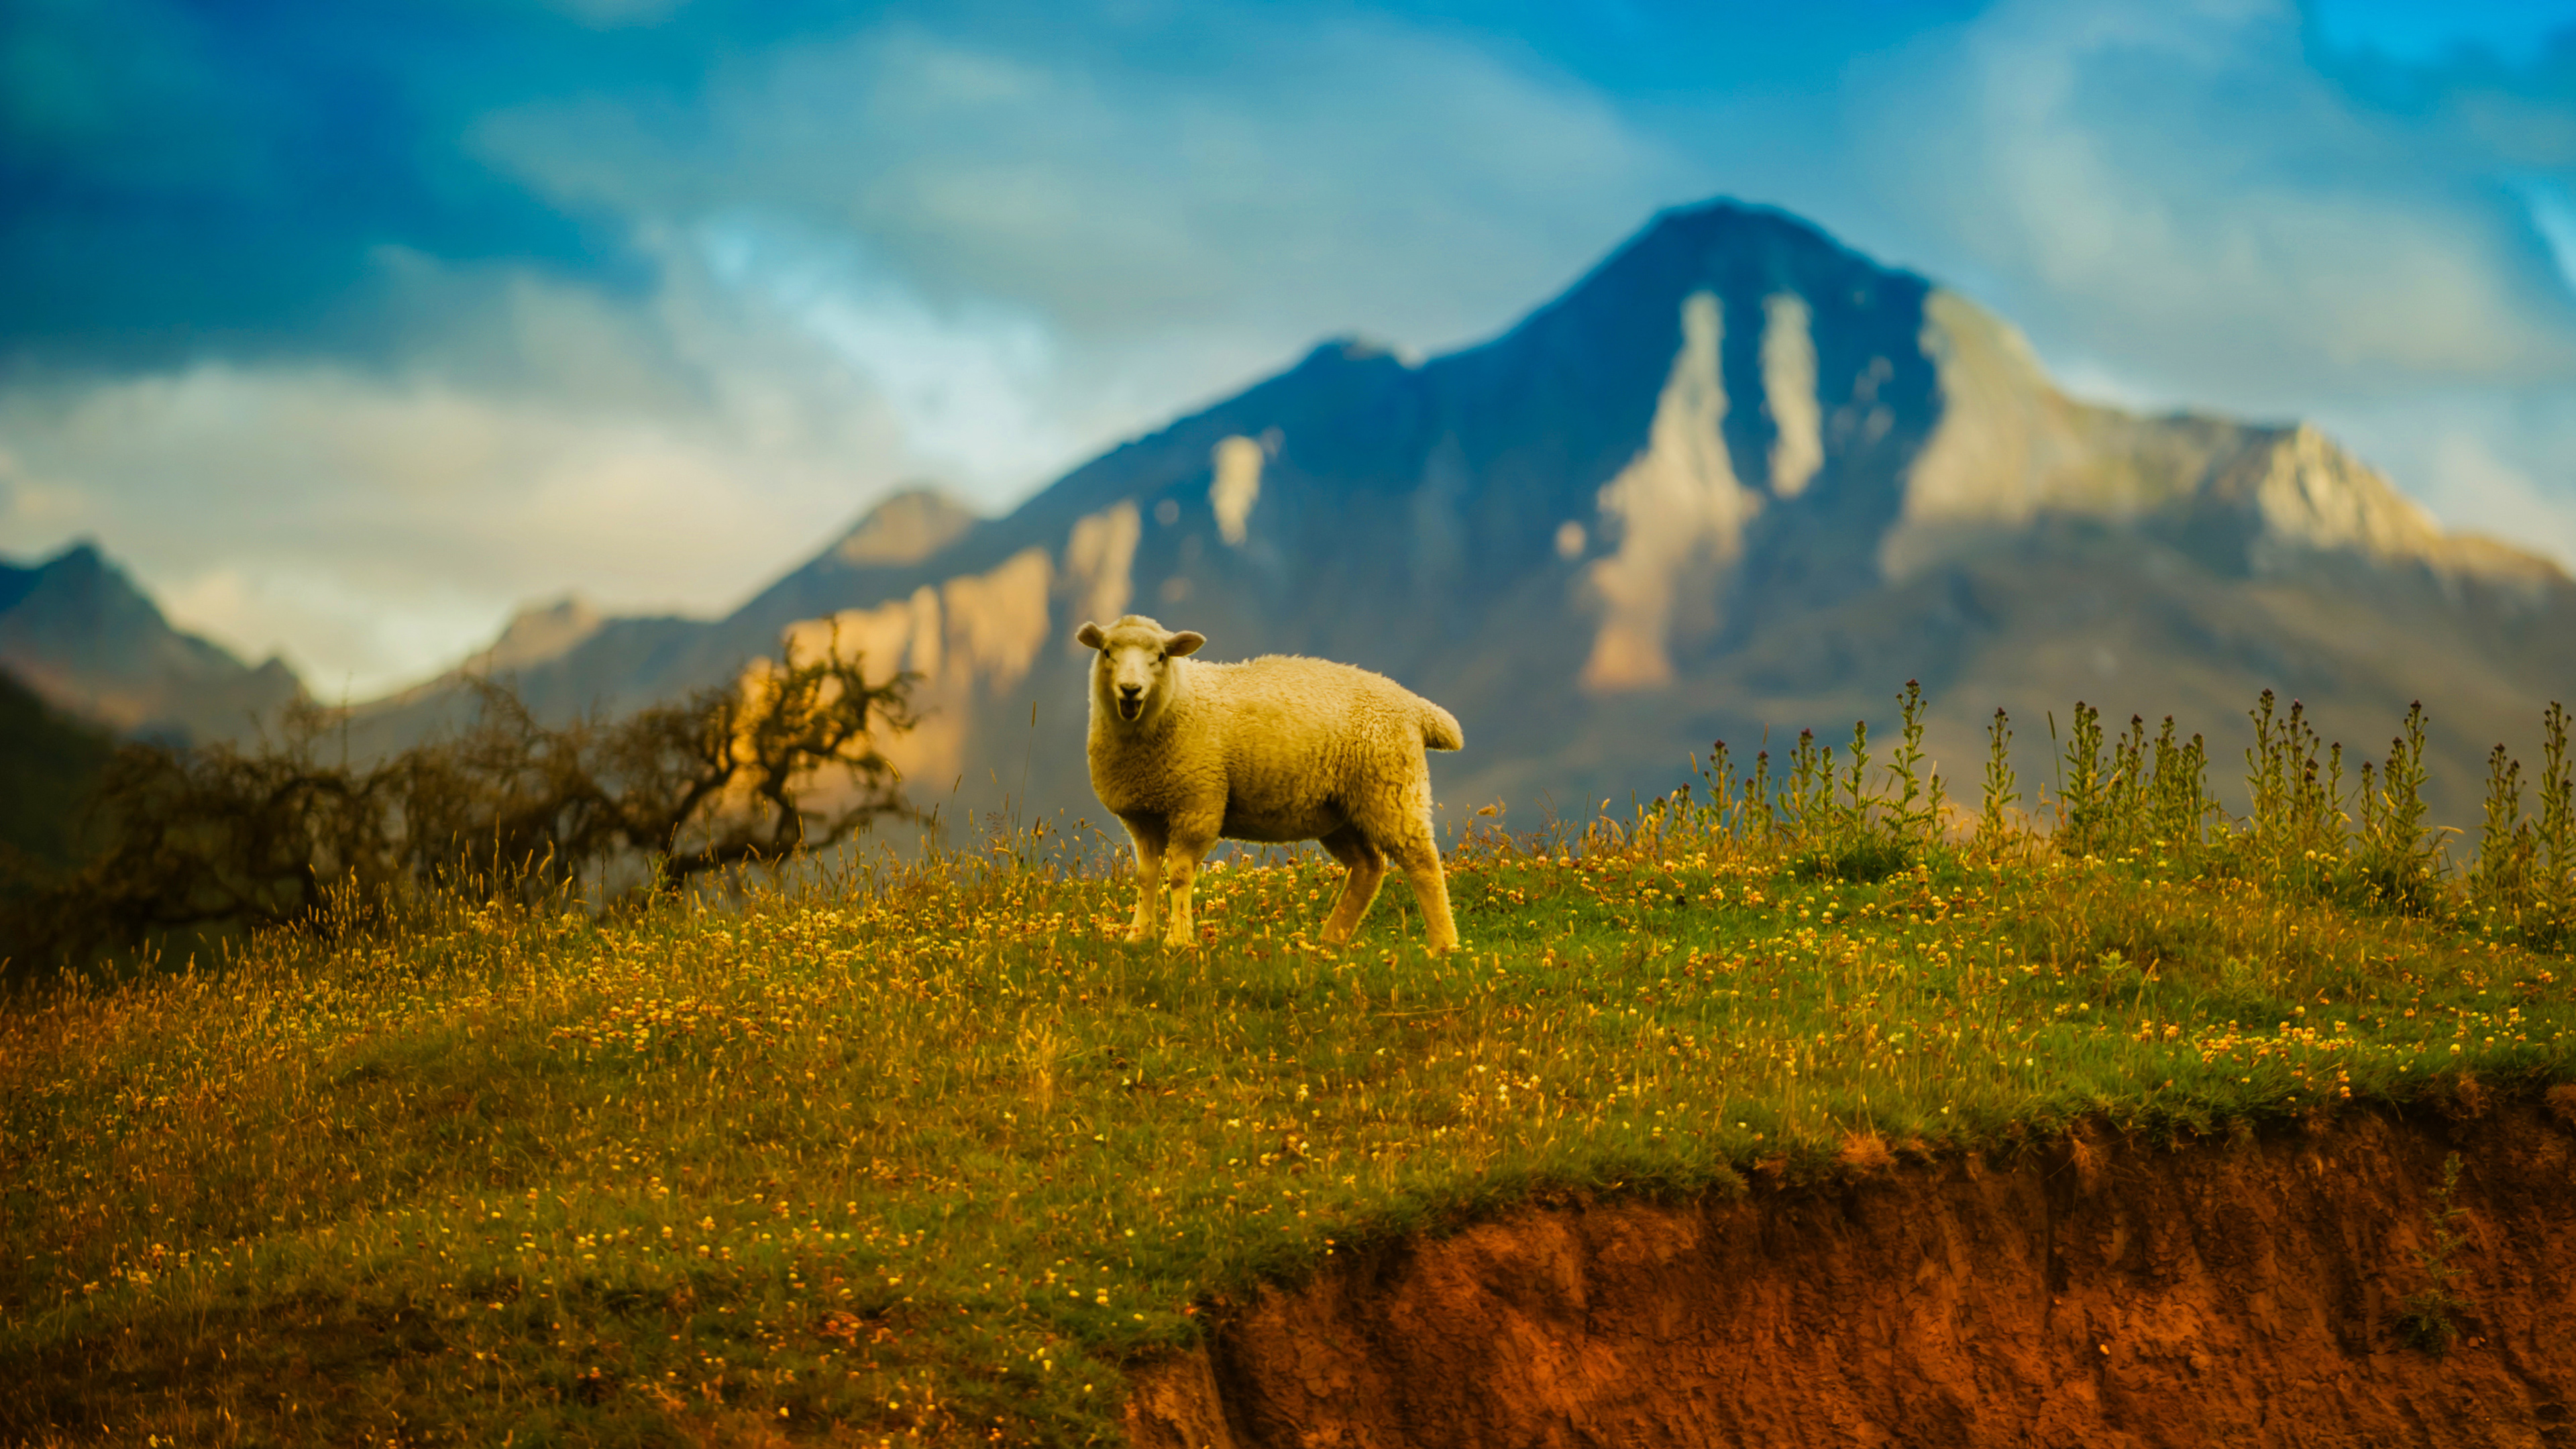 Windows 7 Wallpaper Hd 3d For Desktop New Zealand Sheep 4k Wallpapers Hd Wallpapers Id 25053